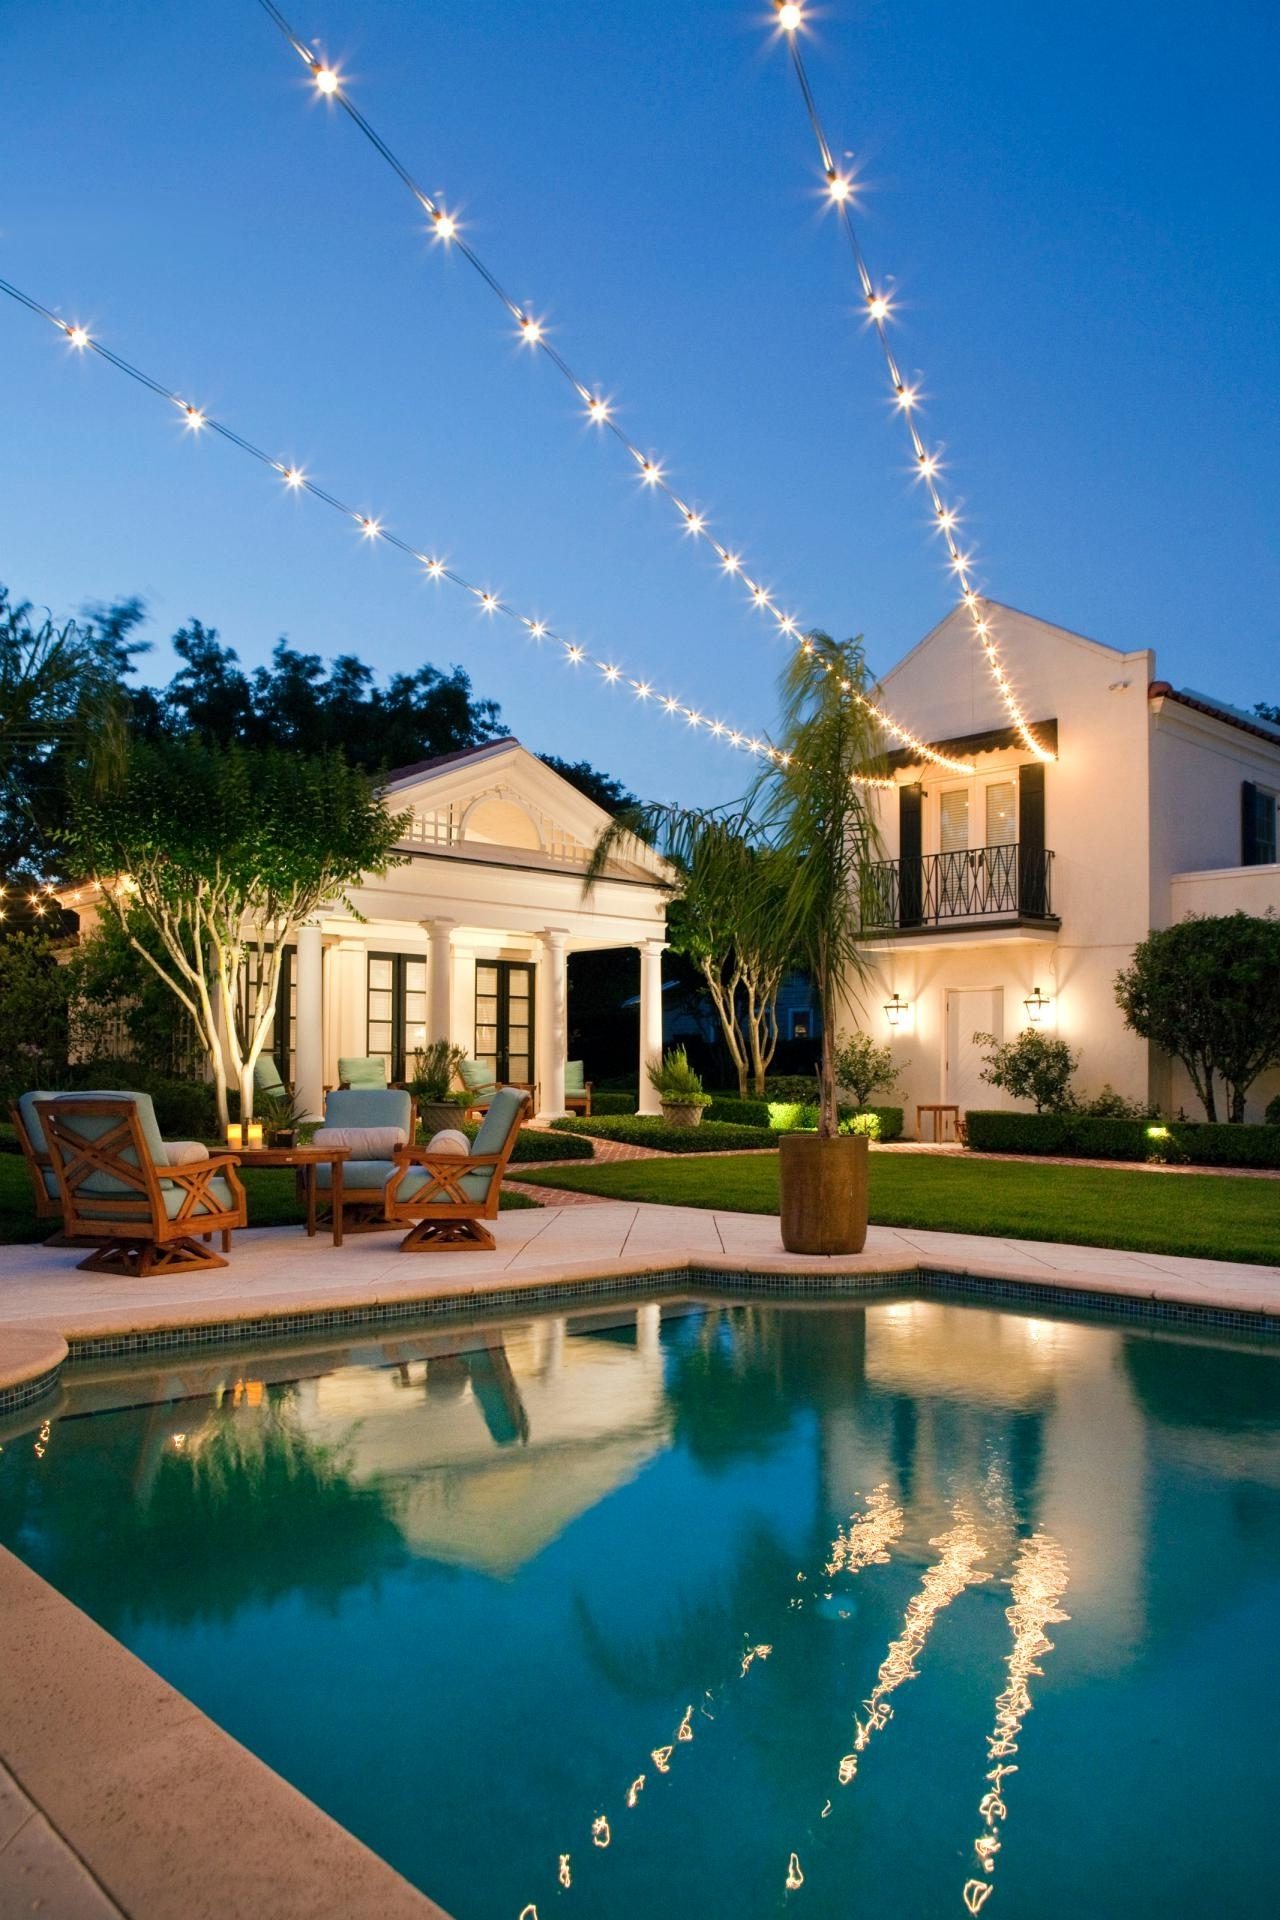 10 Ways To Amp Up Your Outdoor Space With String Lights (View 11 of 20)